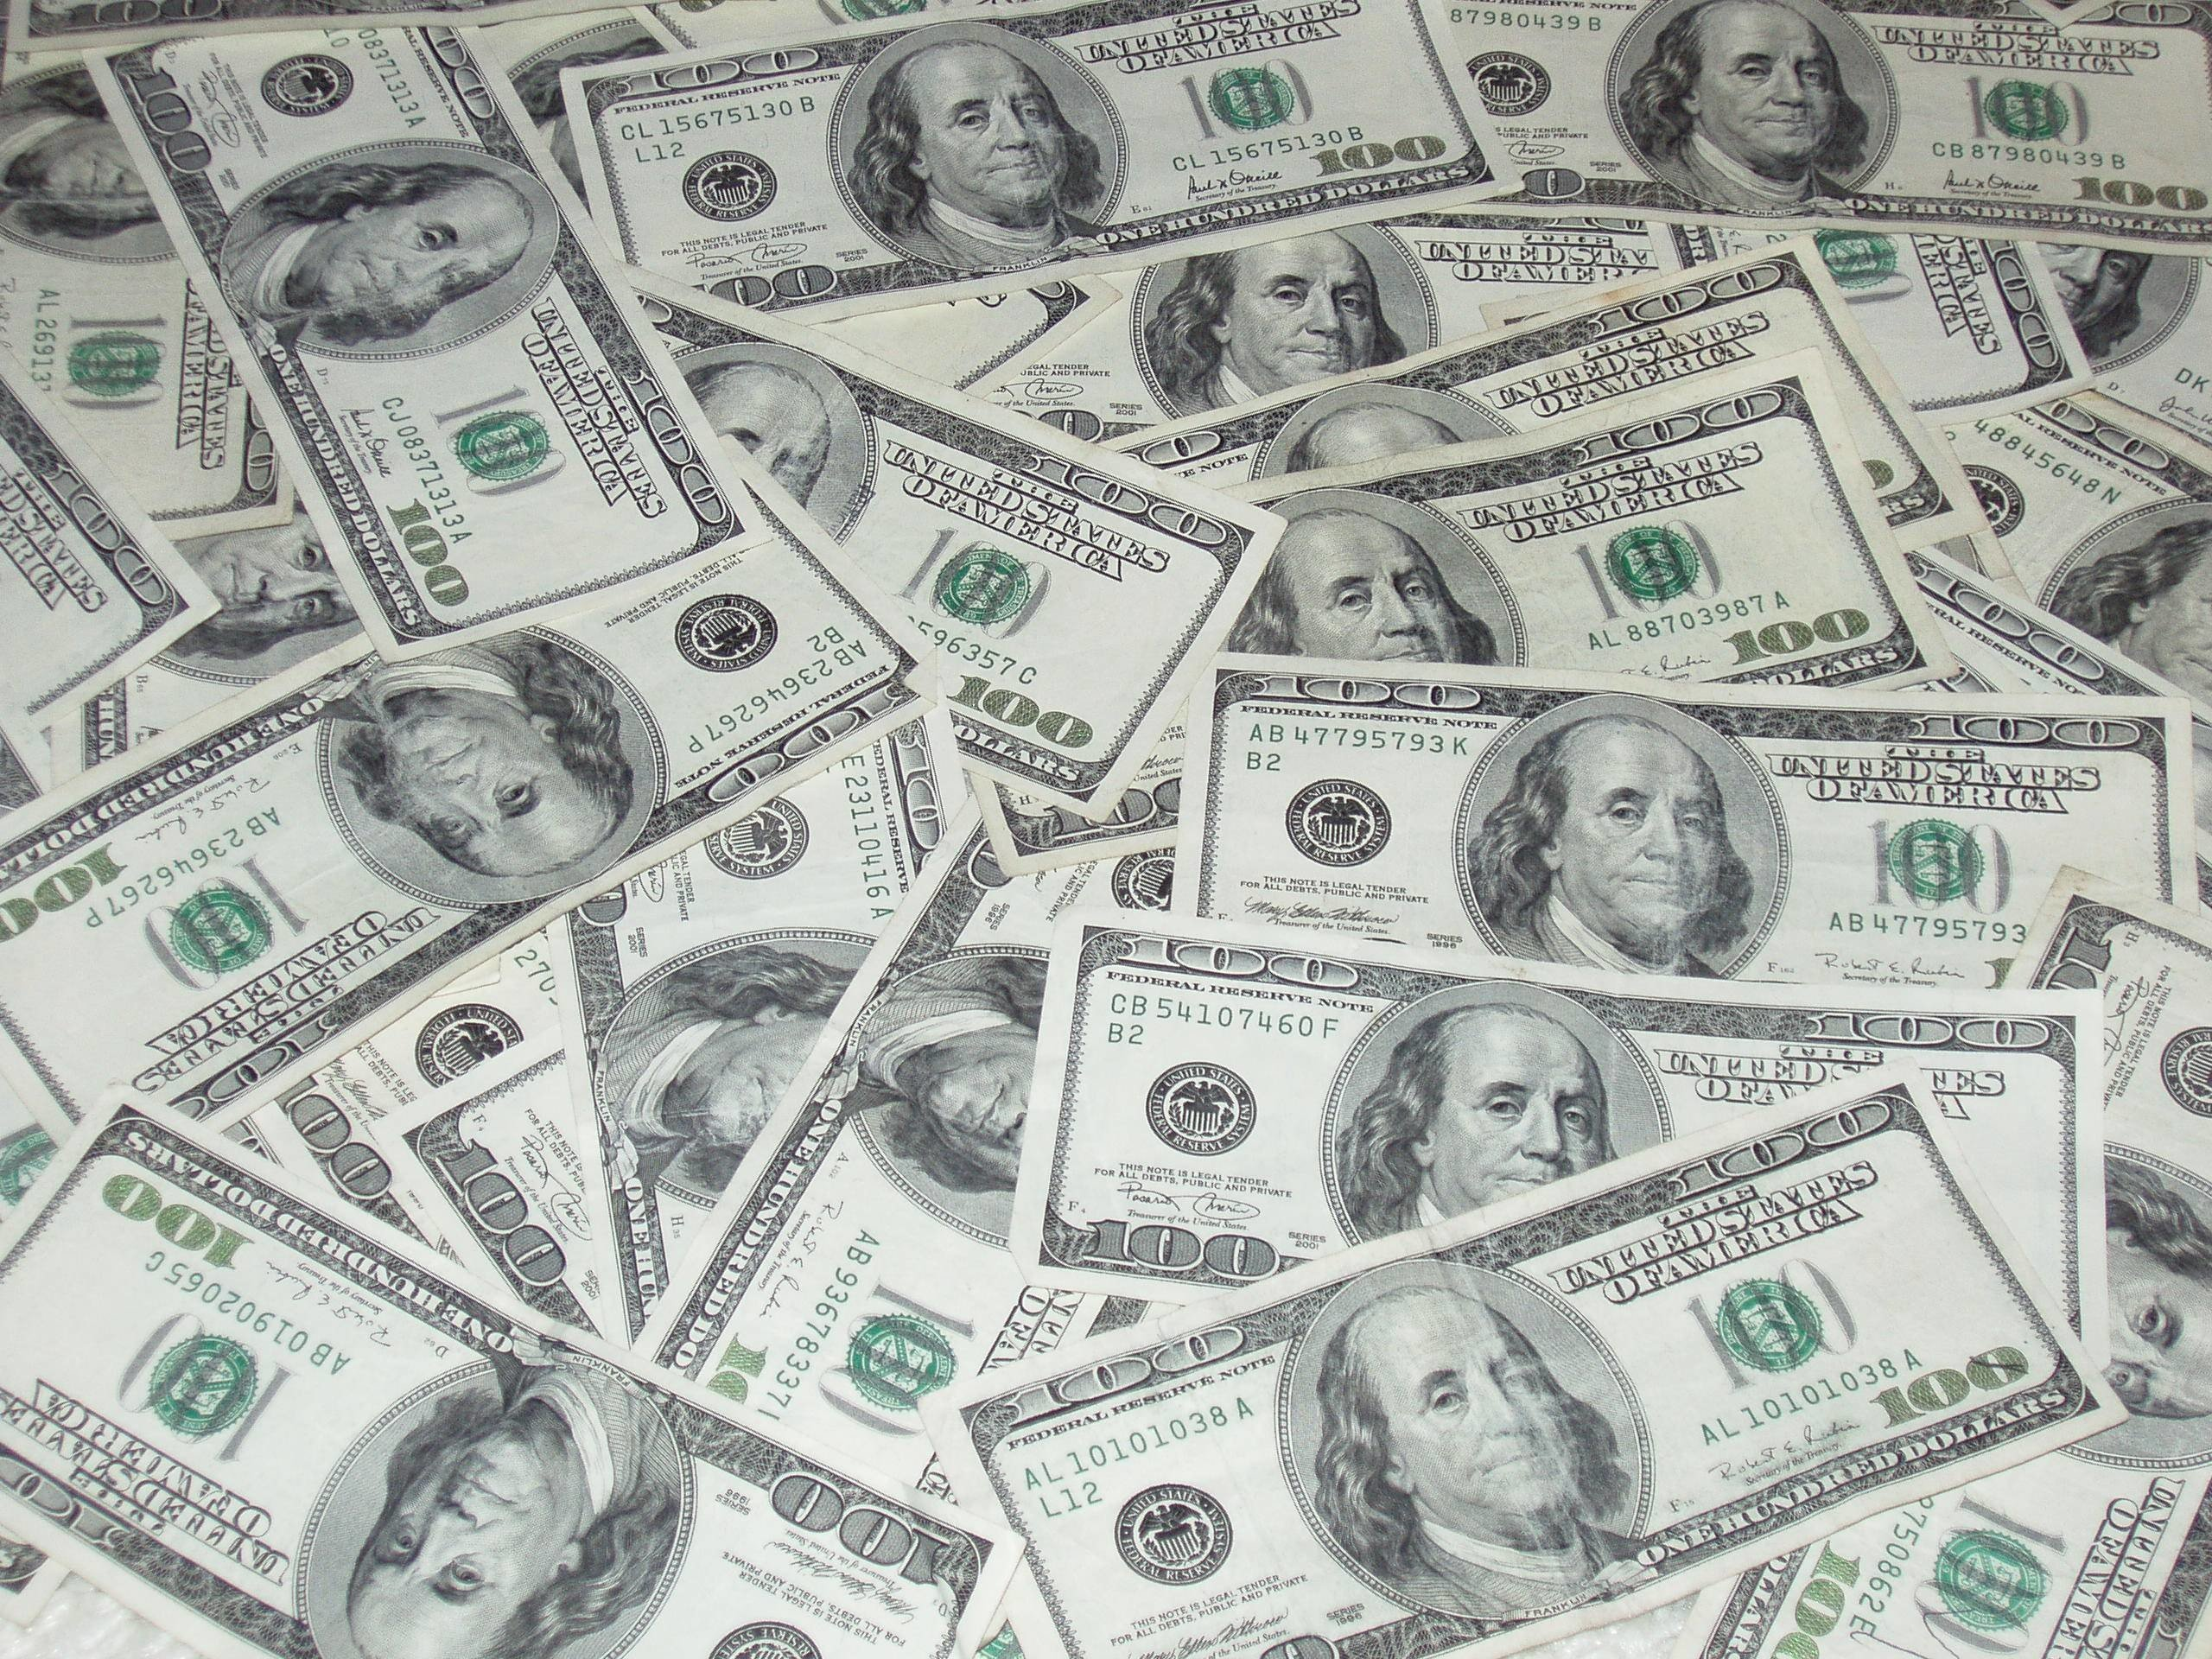 Money 100 Dollar Wallpaper 62 images 2560x1920